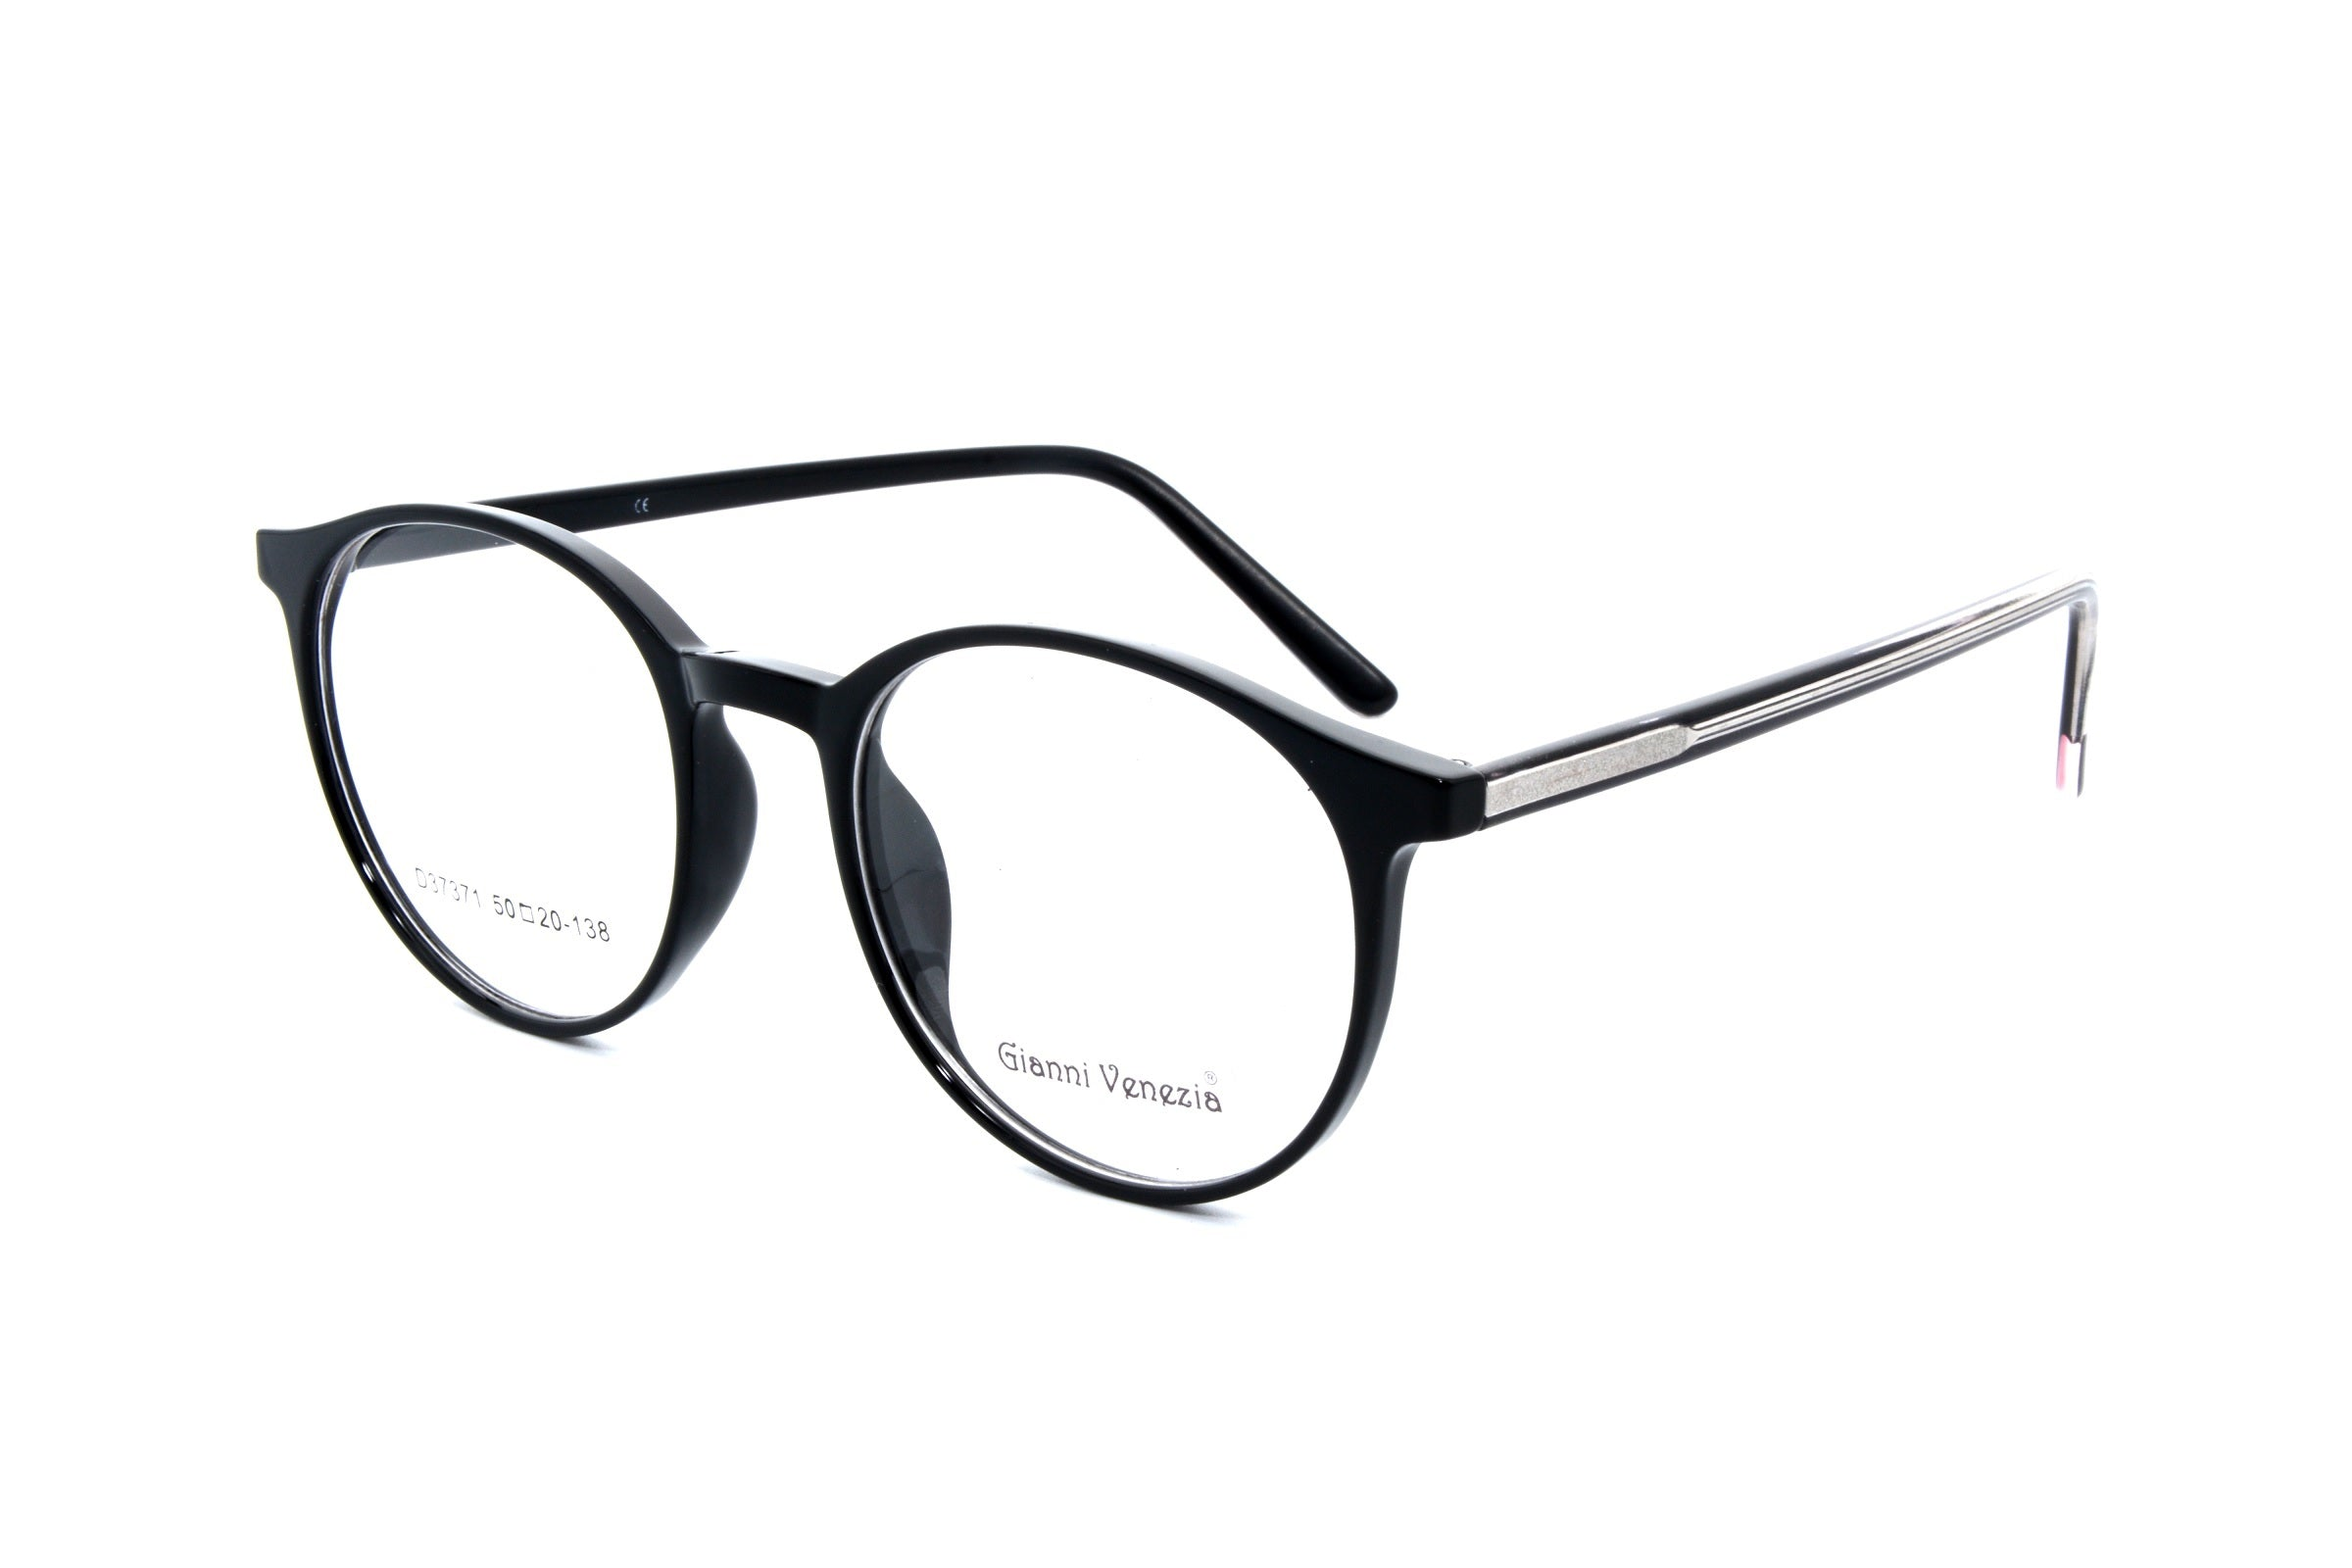 Gianni Vennezia eyewear 37371, C1 - Optics Trading